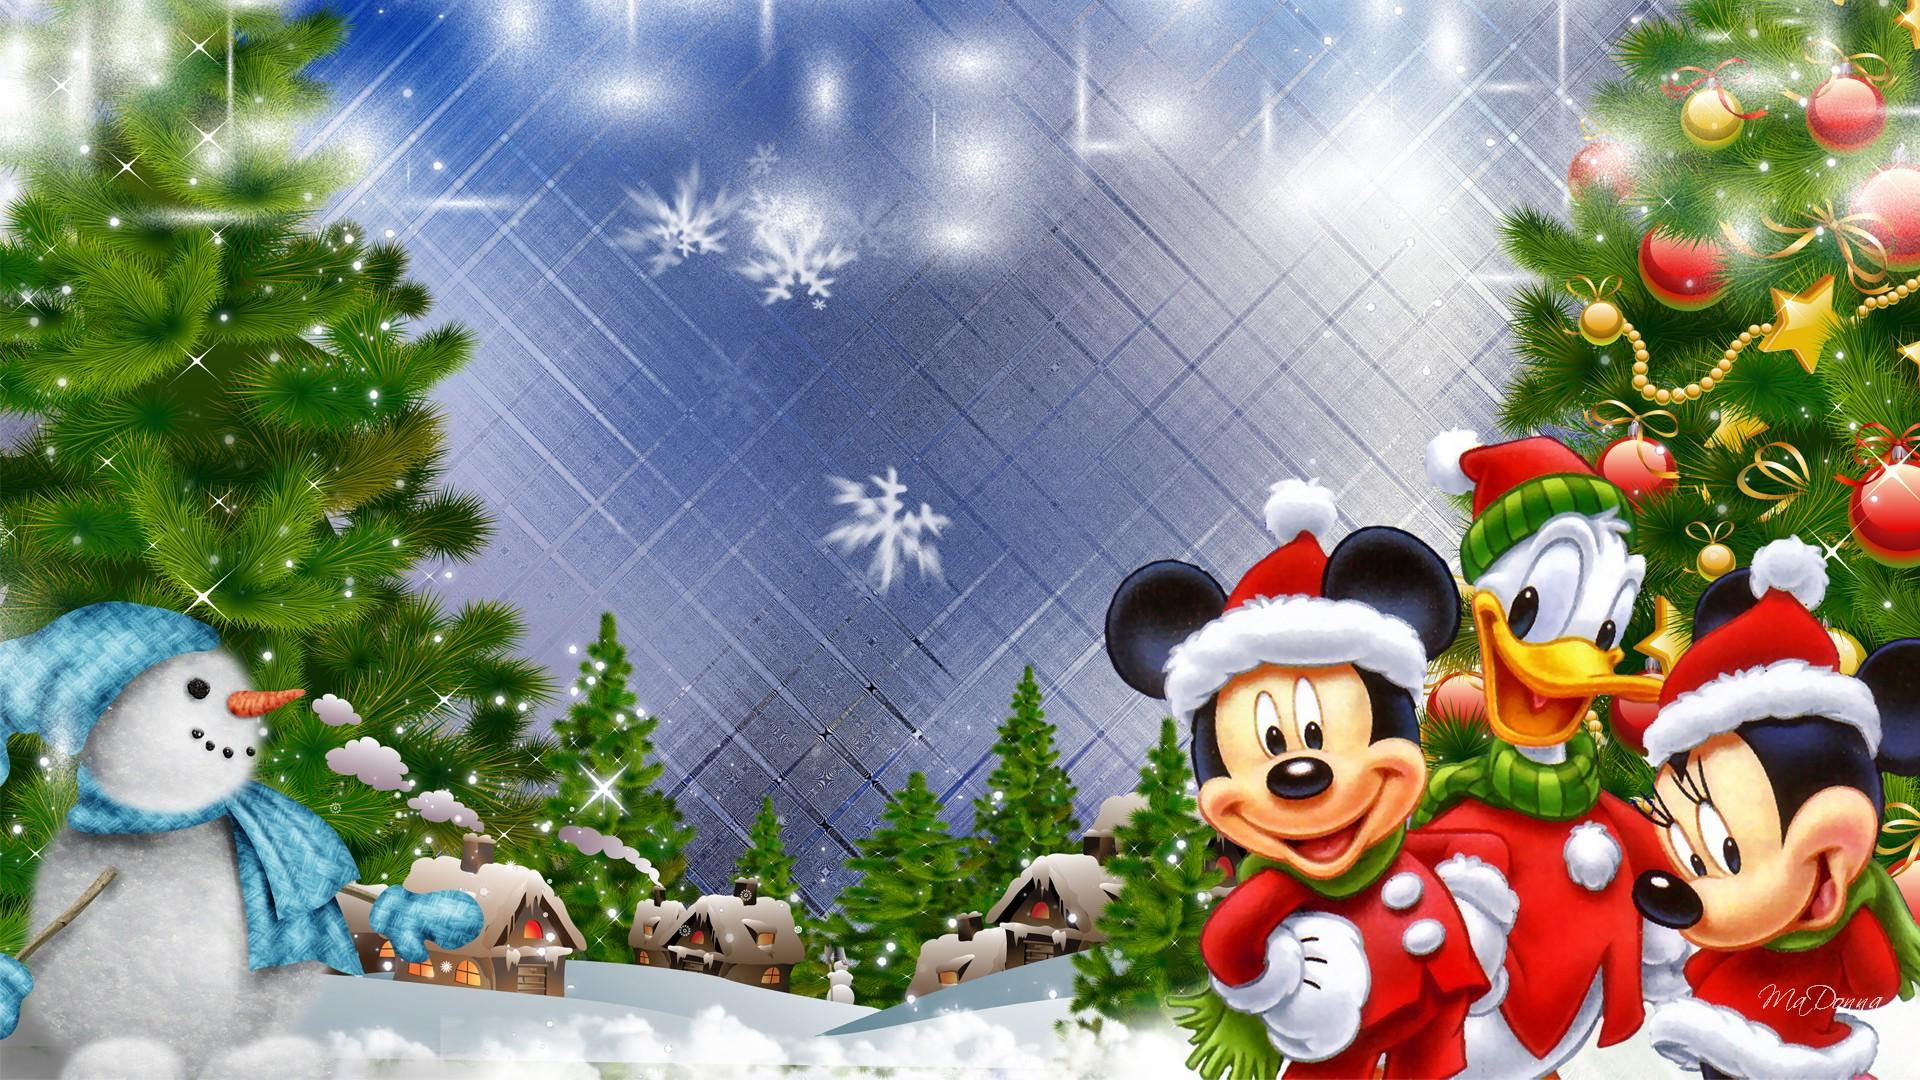 Christmas Mickey Mouse Wallpaper